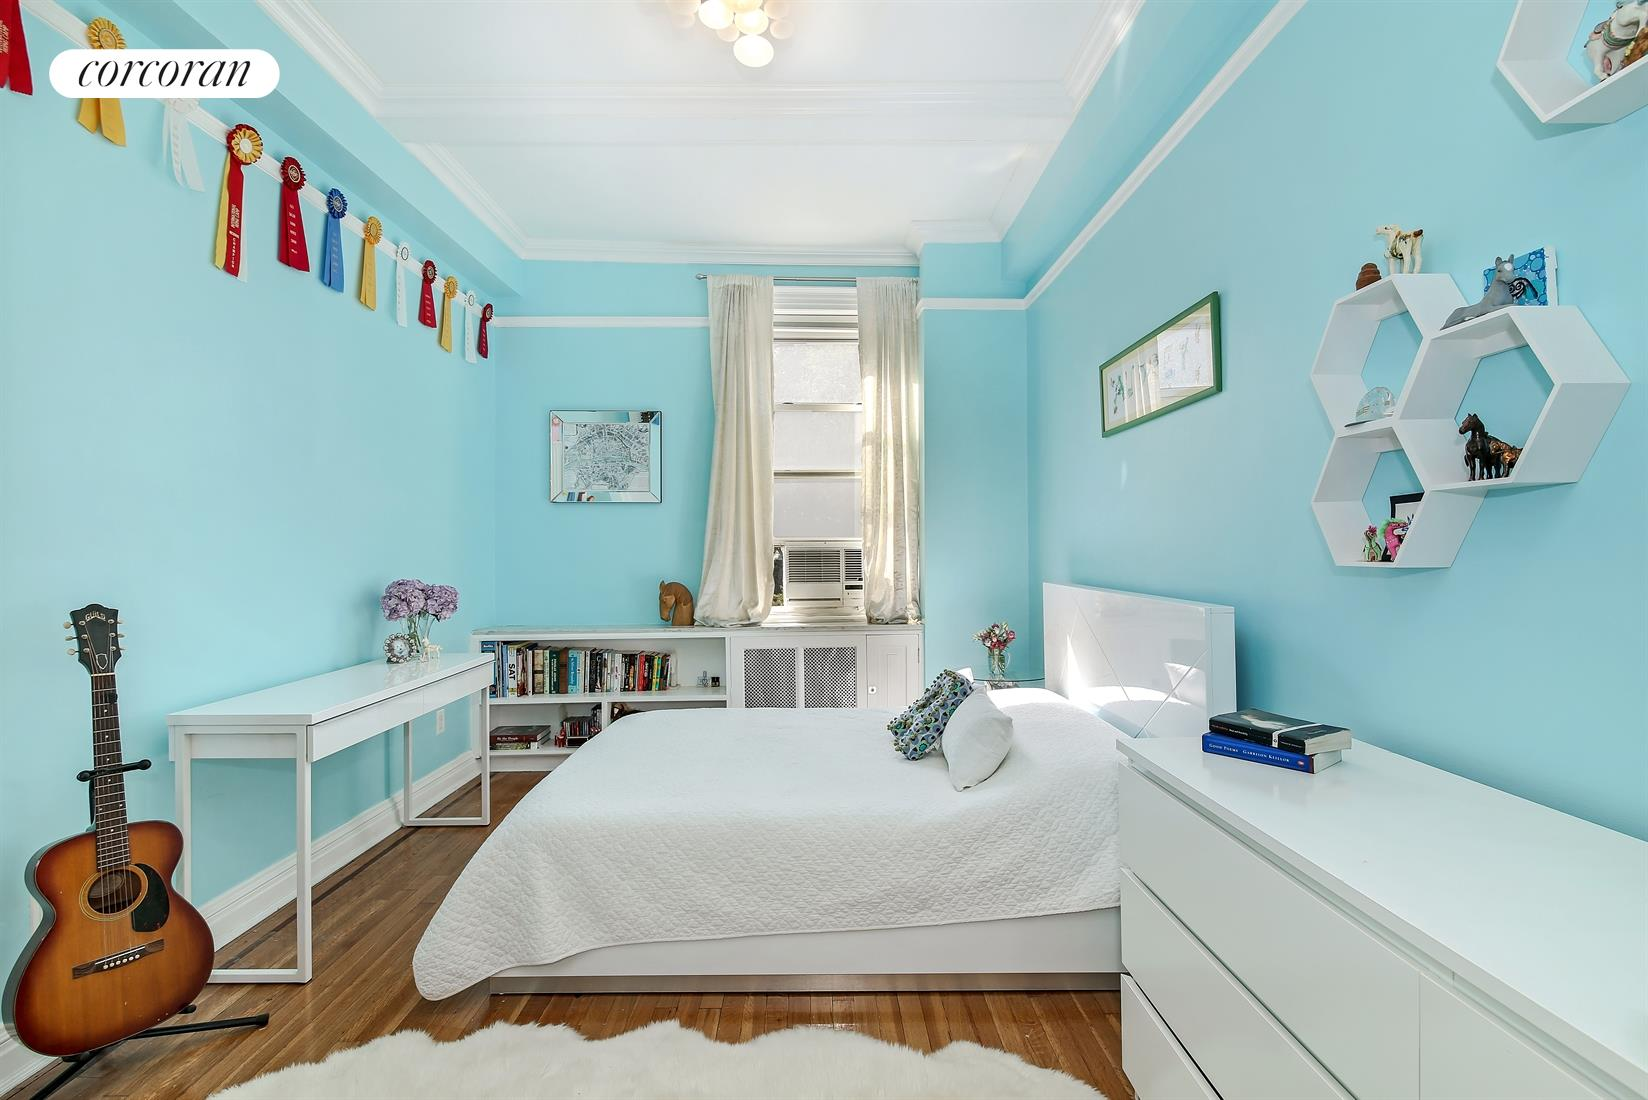 Corcoran, 41 Eastern Parkway, Apt. 2A, Prospect Heights Real Estate ...